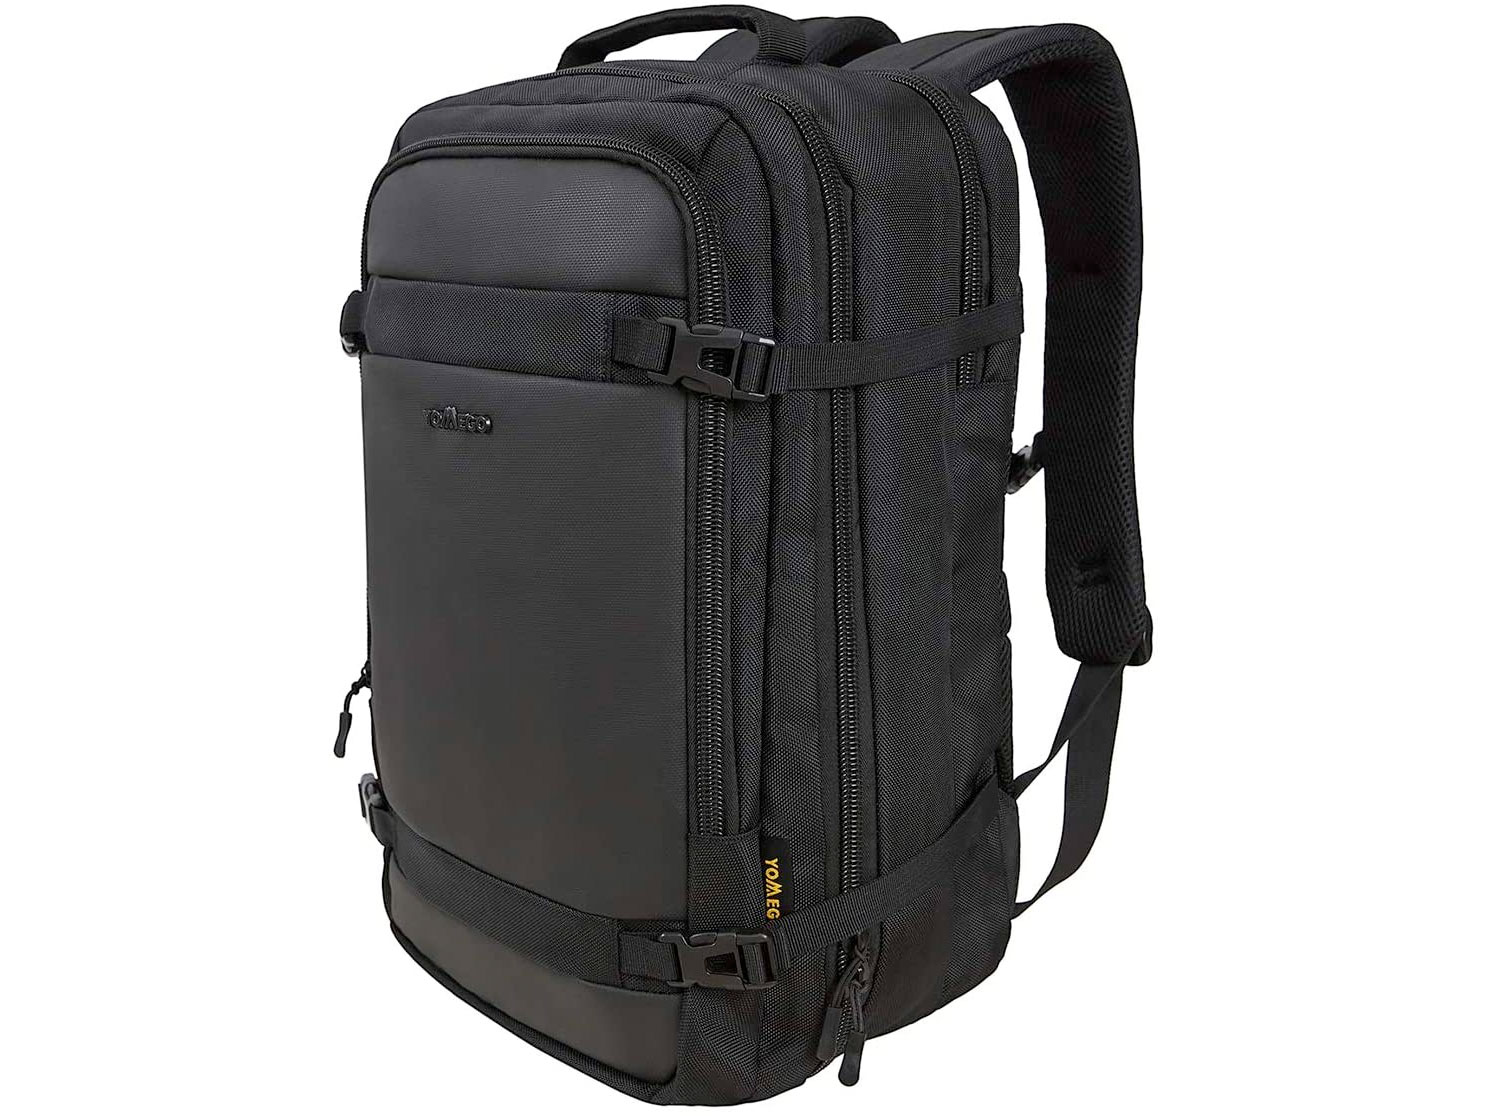 Amazon:YOMEGO Travel Laptop Backpack只賣$15.29